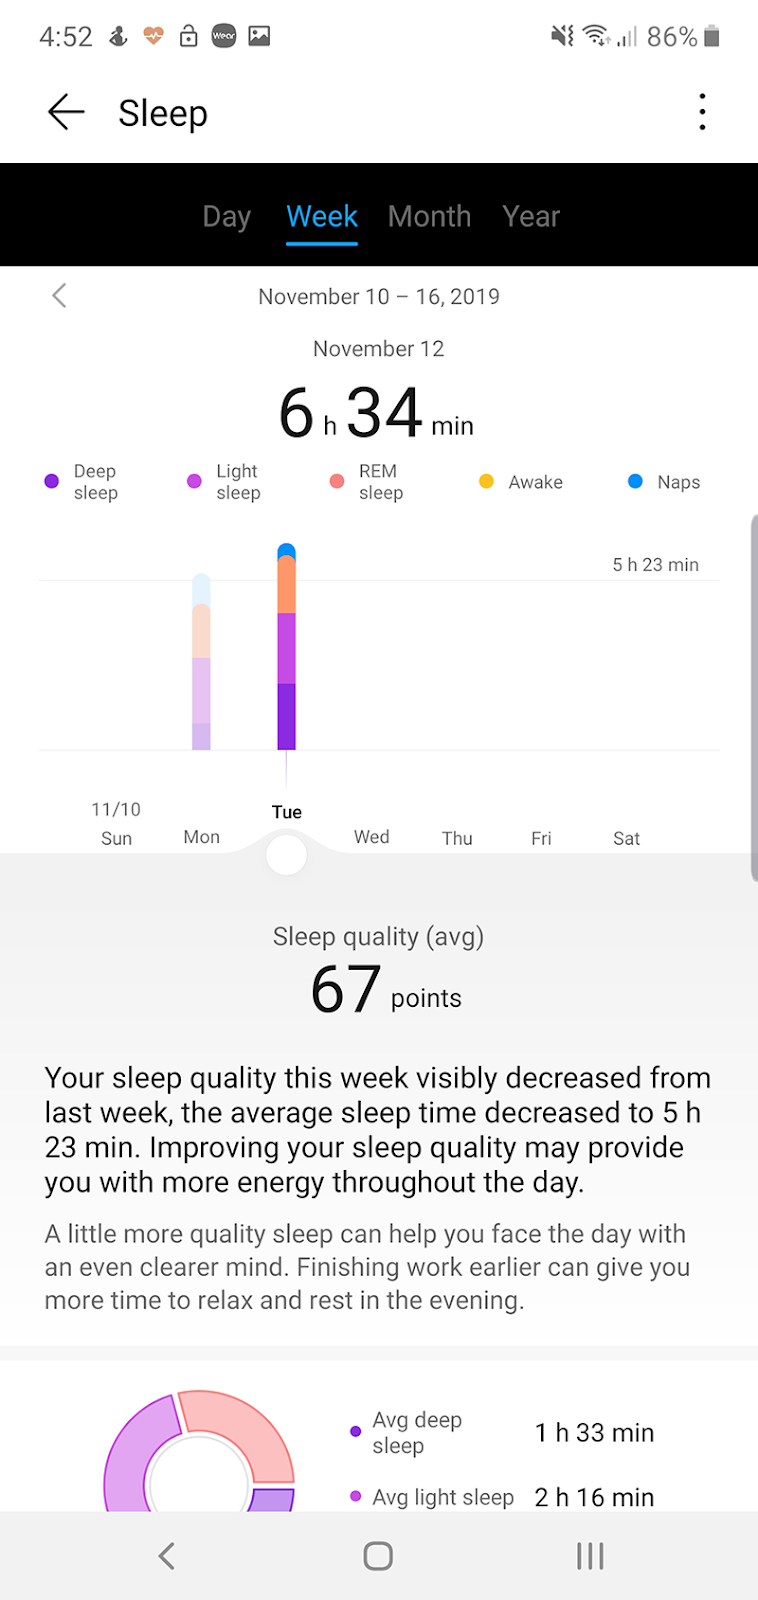 Advanced sleep tracking features